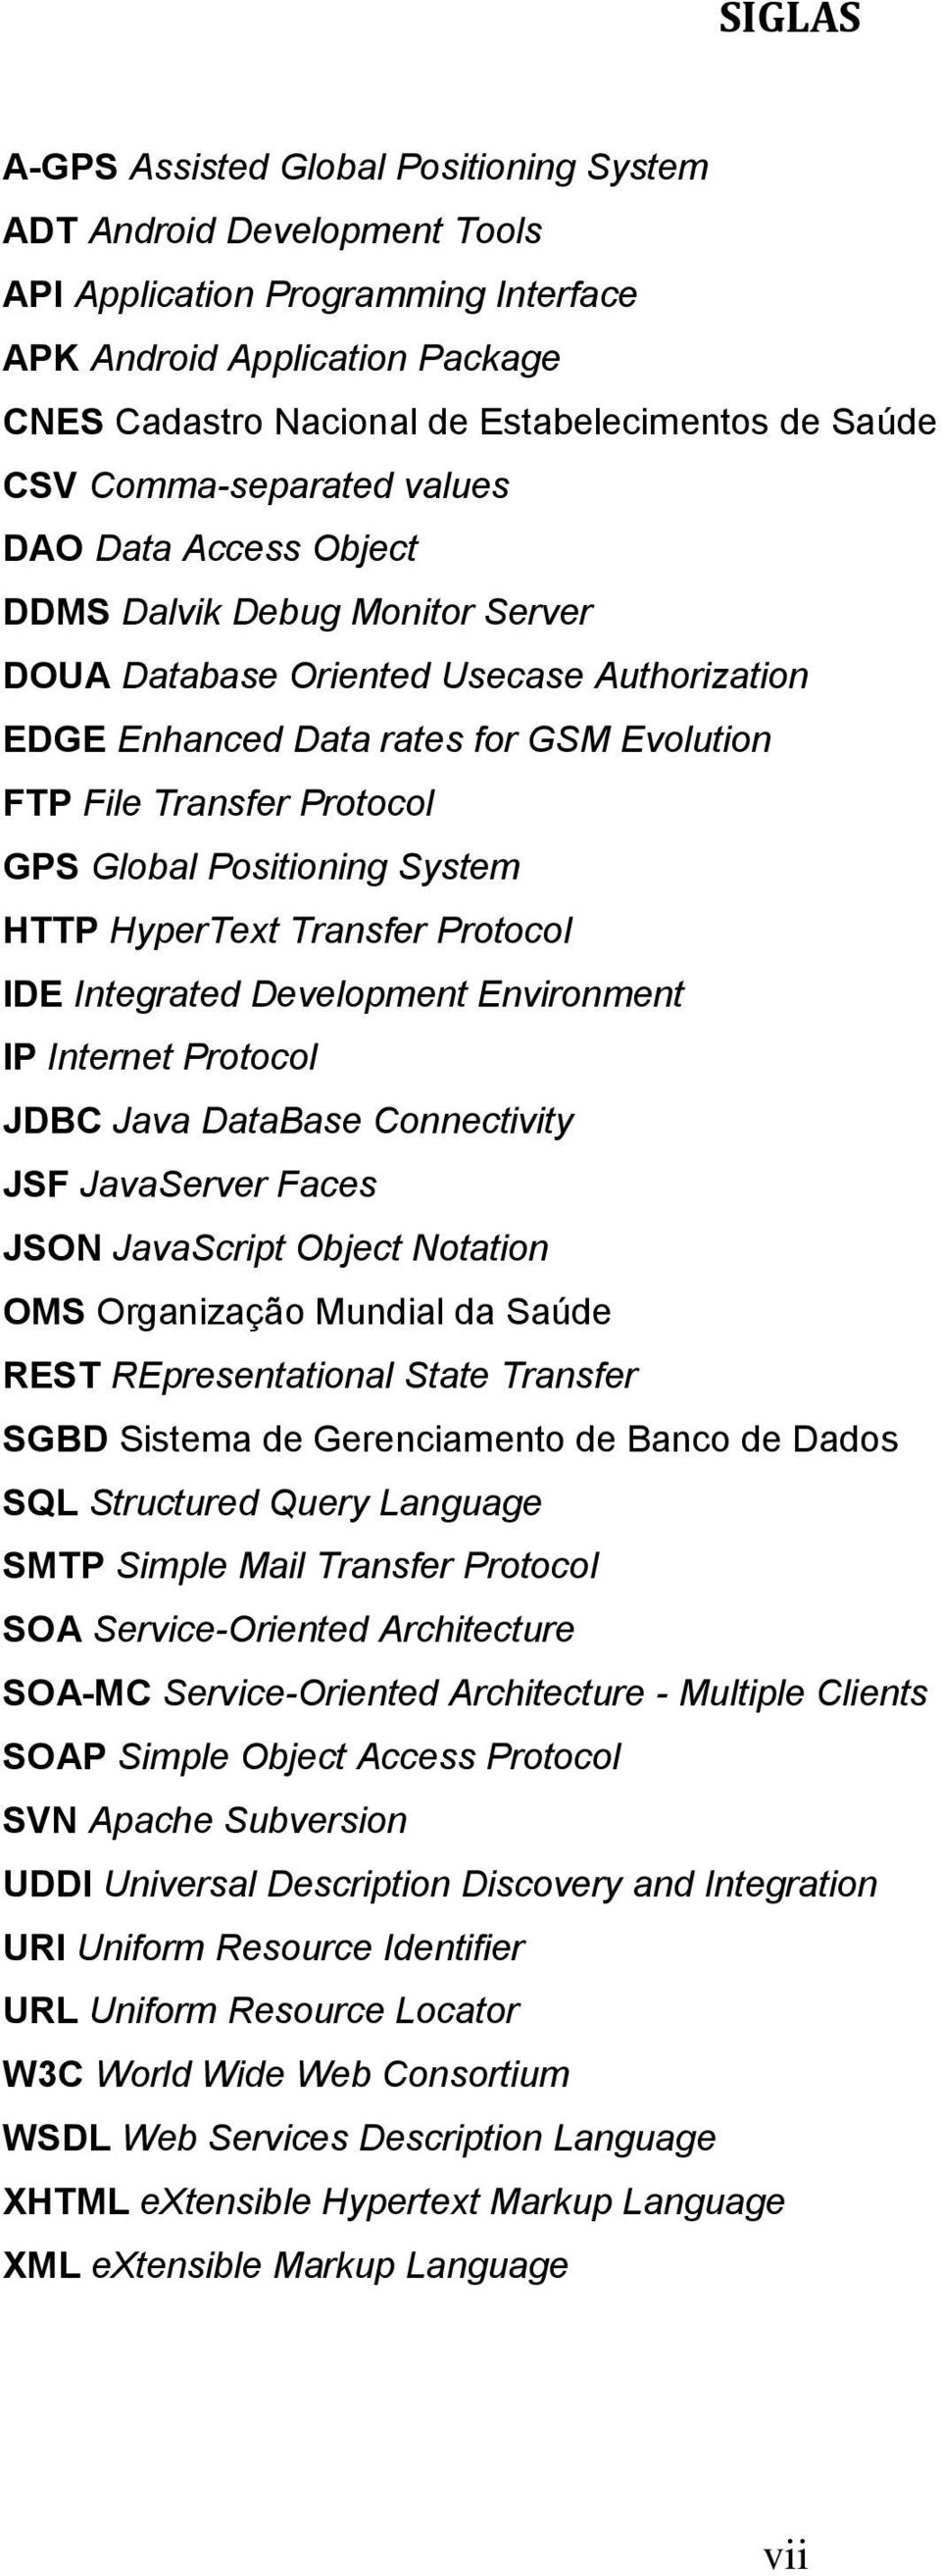 GPS Global Positioning System HTTP HyperText Transfer Protocol IDE Integrated Development Environment IP Internet Protocol JDBC Java DataBase Connectivity JSF JavaServer Faces JSON JavaScript Object